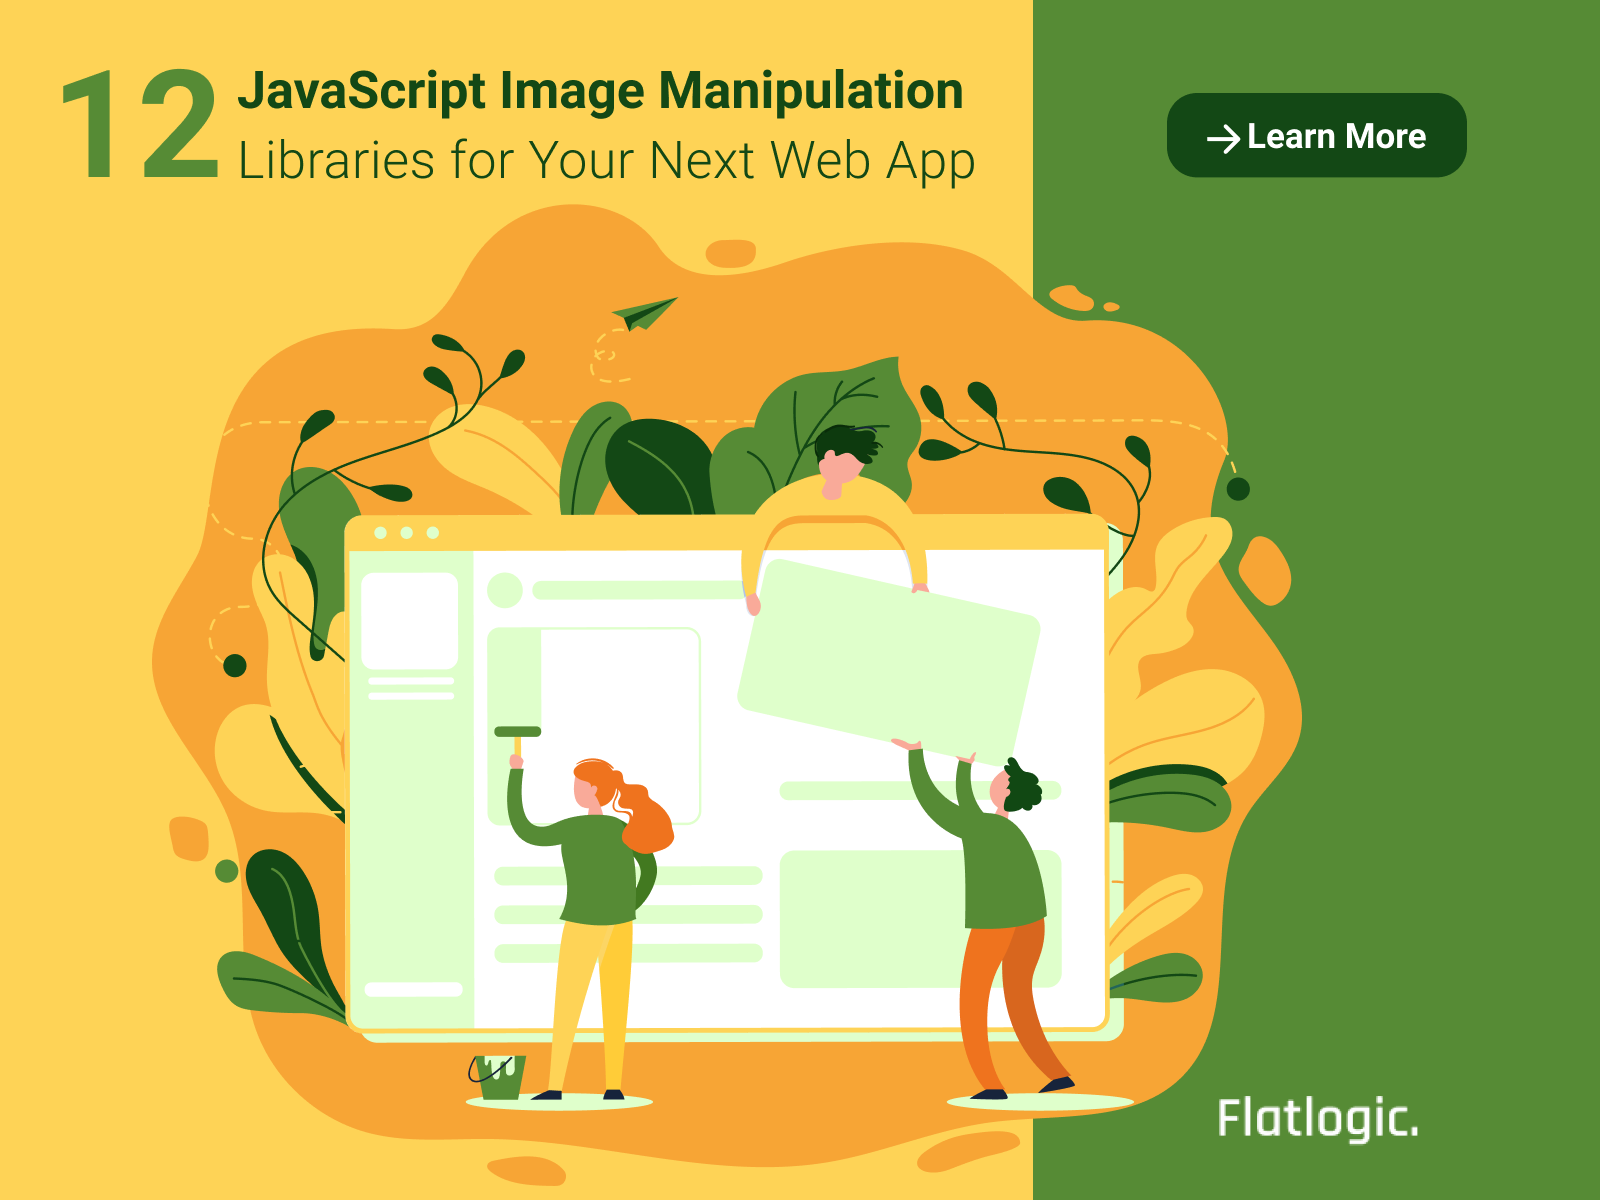 12 JavaScript Image Manipulation Libraries for Your Next Web App